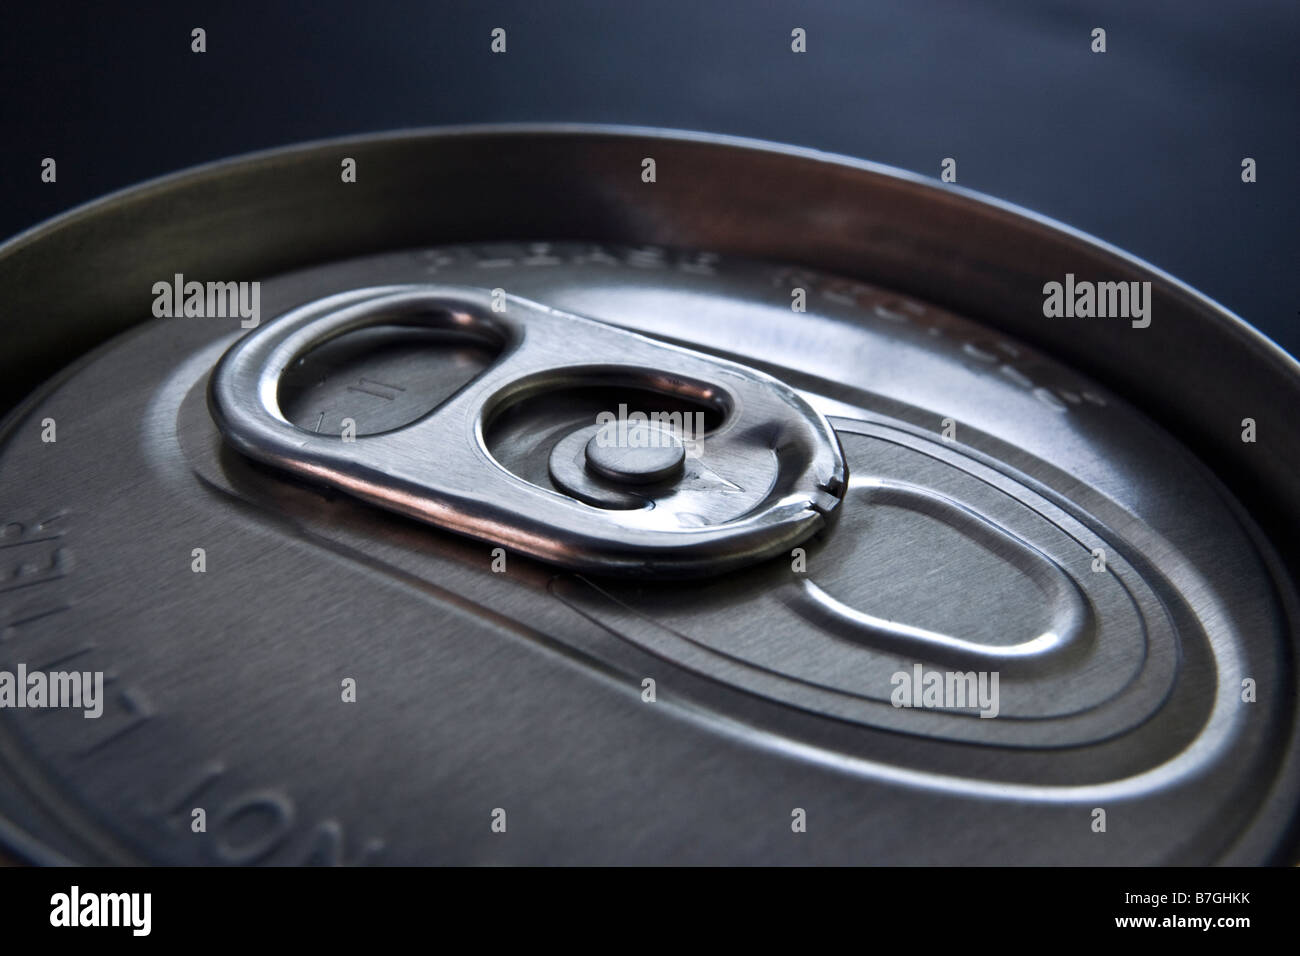 Ring pull on a drink can - Stock Image